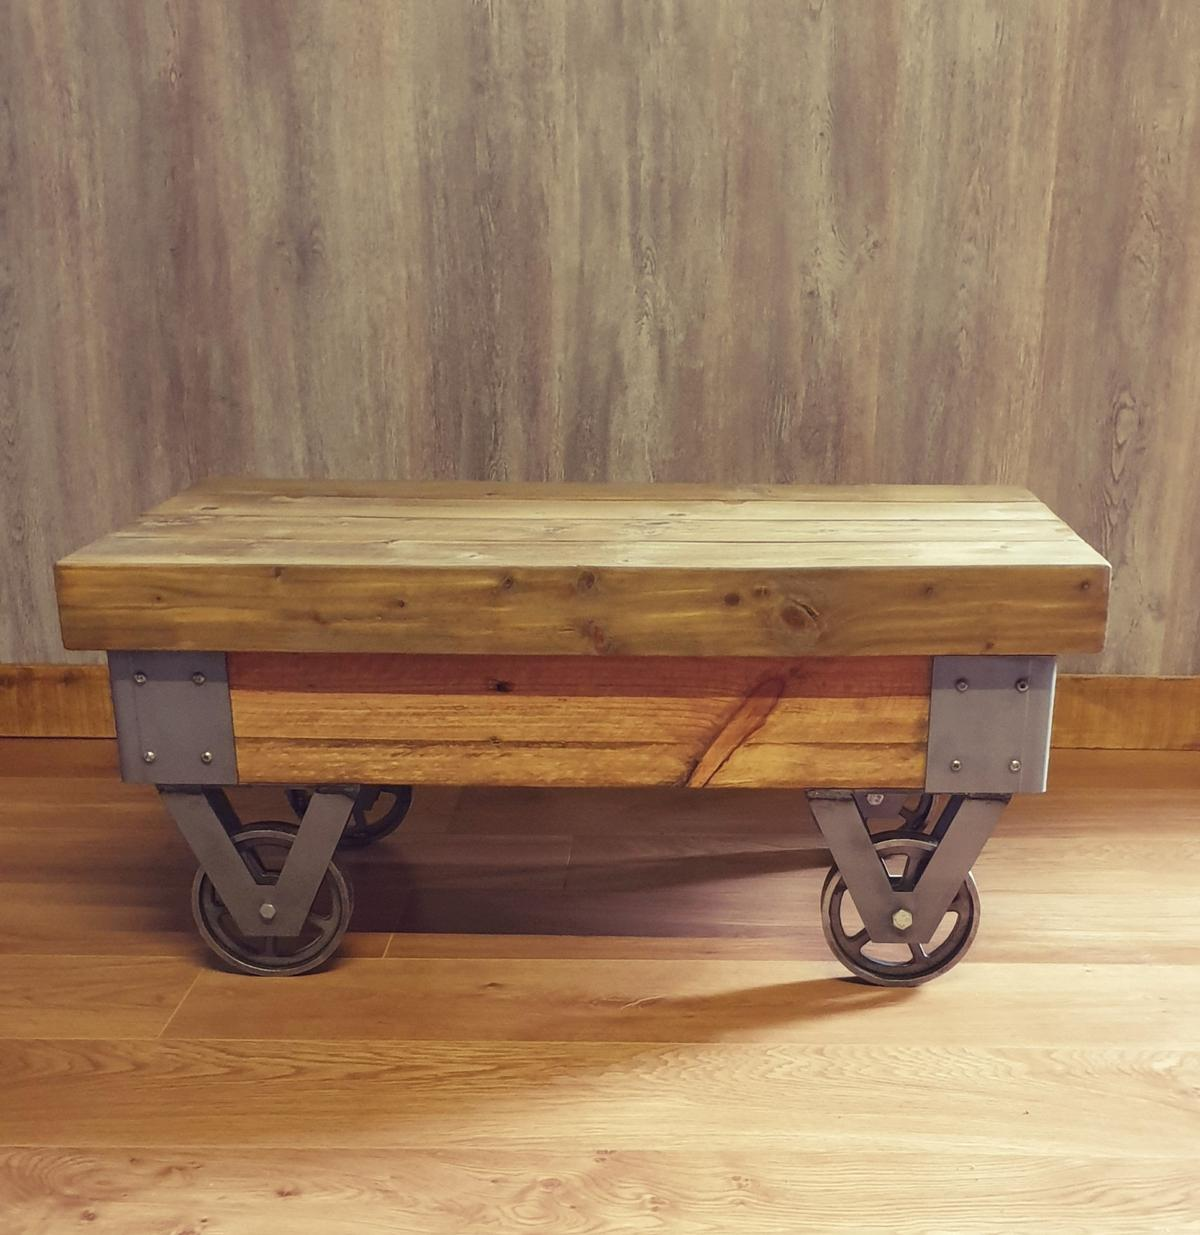 Rustic Industrial Coffee Table Cart In St2 Trent For 120 00 For Sale Shpock